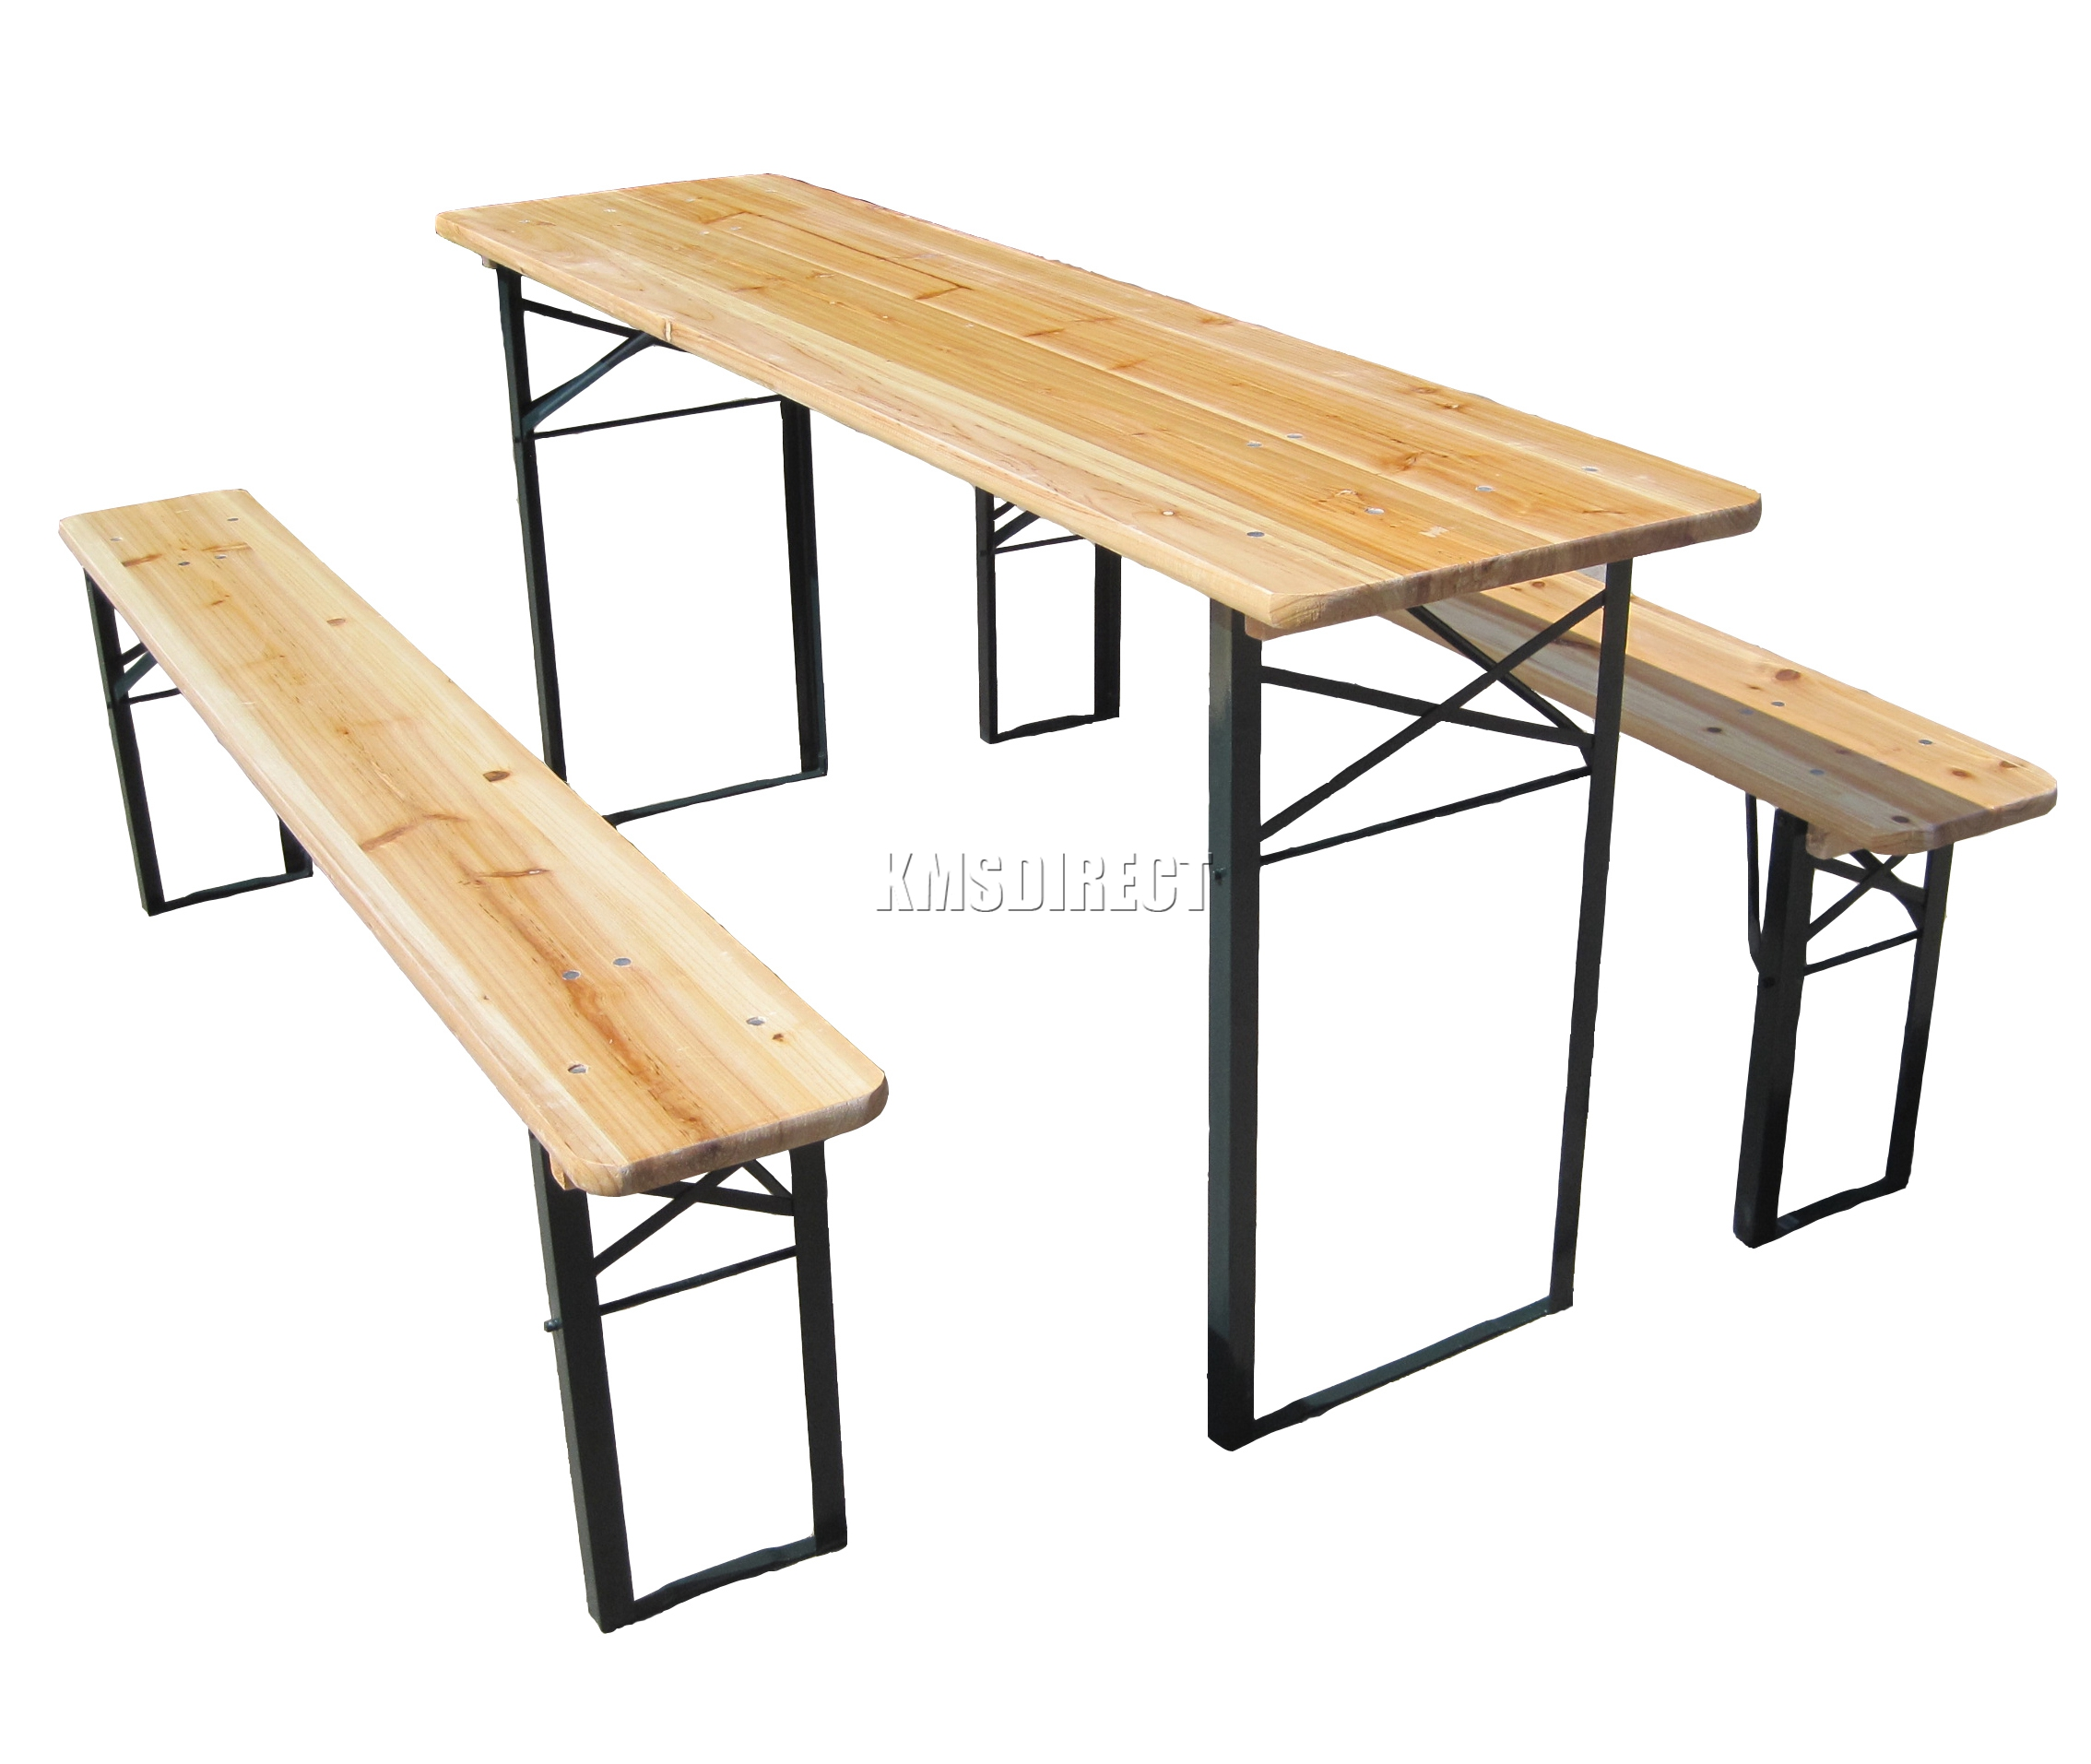 Outdoor Wooden Folding Beer Table Bench Set Trestle Garden Furniture Steel Leg Ebay